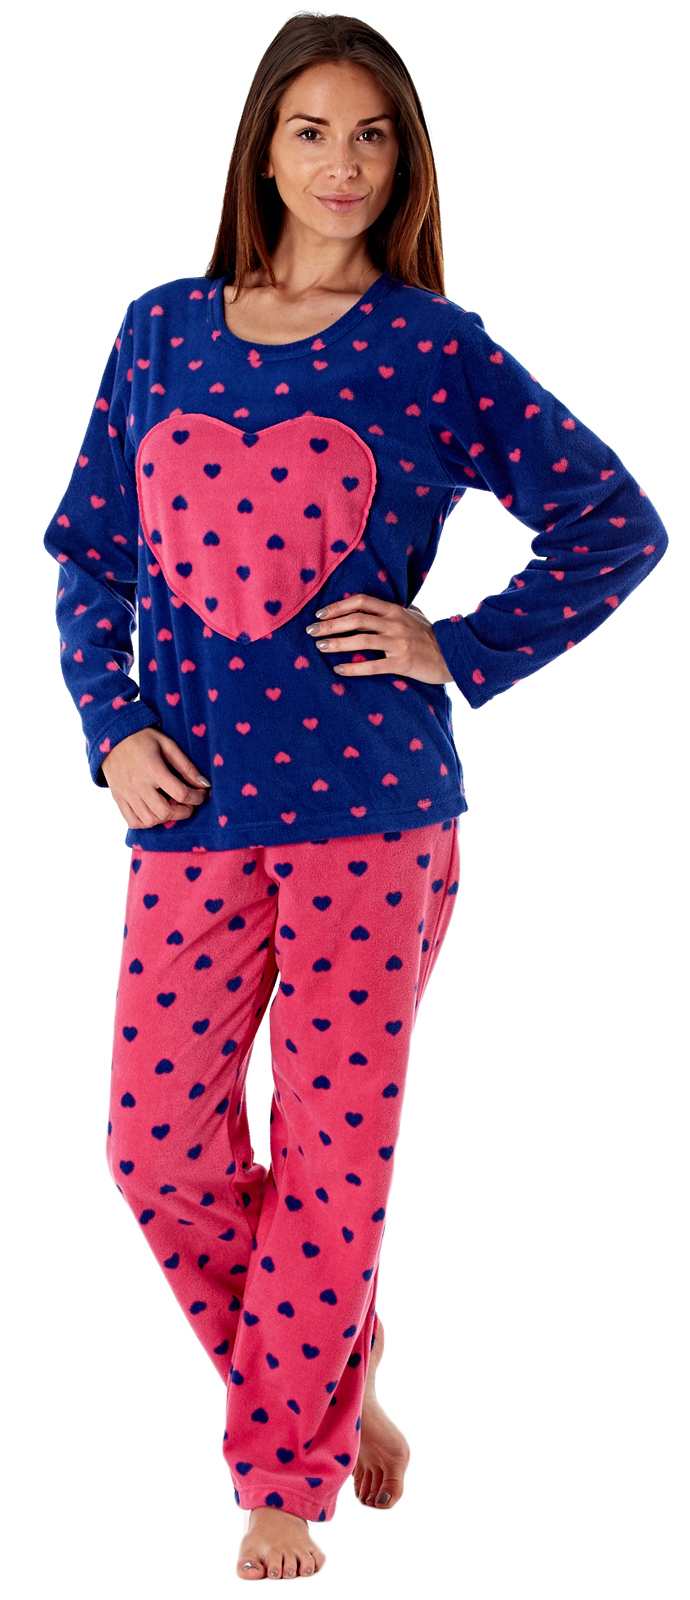 Looking for the perfect pair of flannel pajamas to help her snuggle up in style? Made from super-soft fabrics like flannel and fleece, these great PJs and nightgowns are cozy, warm, and cut to give her the comfort you know she's been craving.